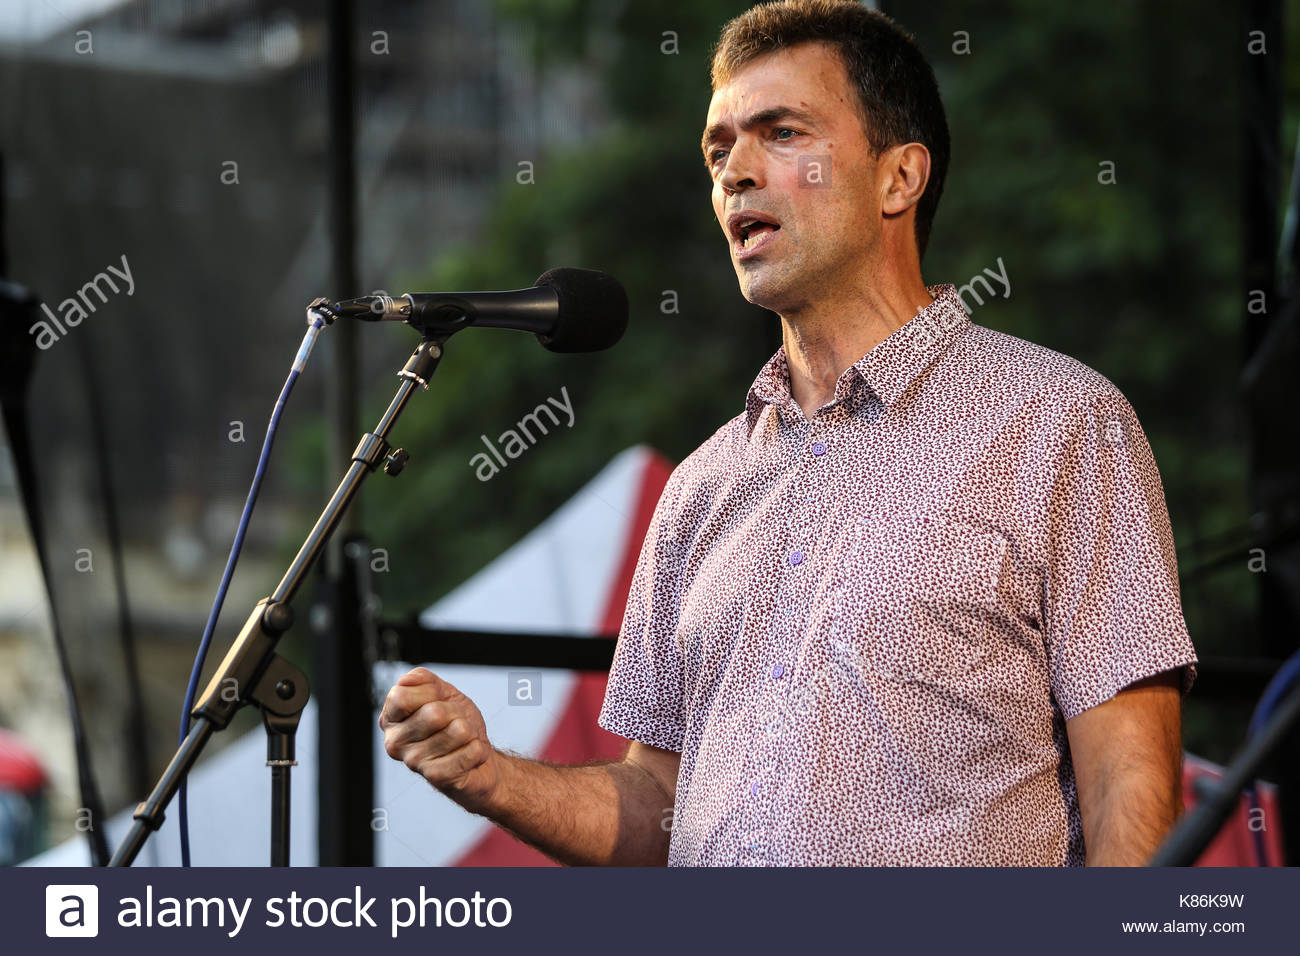 MP Tom Brake speaks at an anti-Brexit pro-EU meeting at Westminster - Stock Image